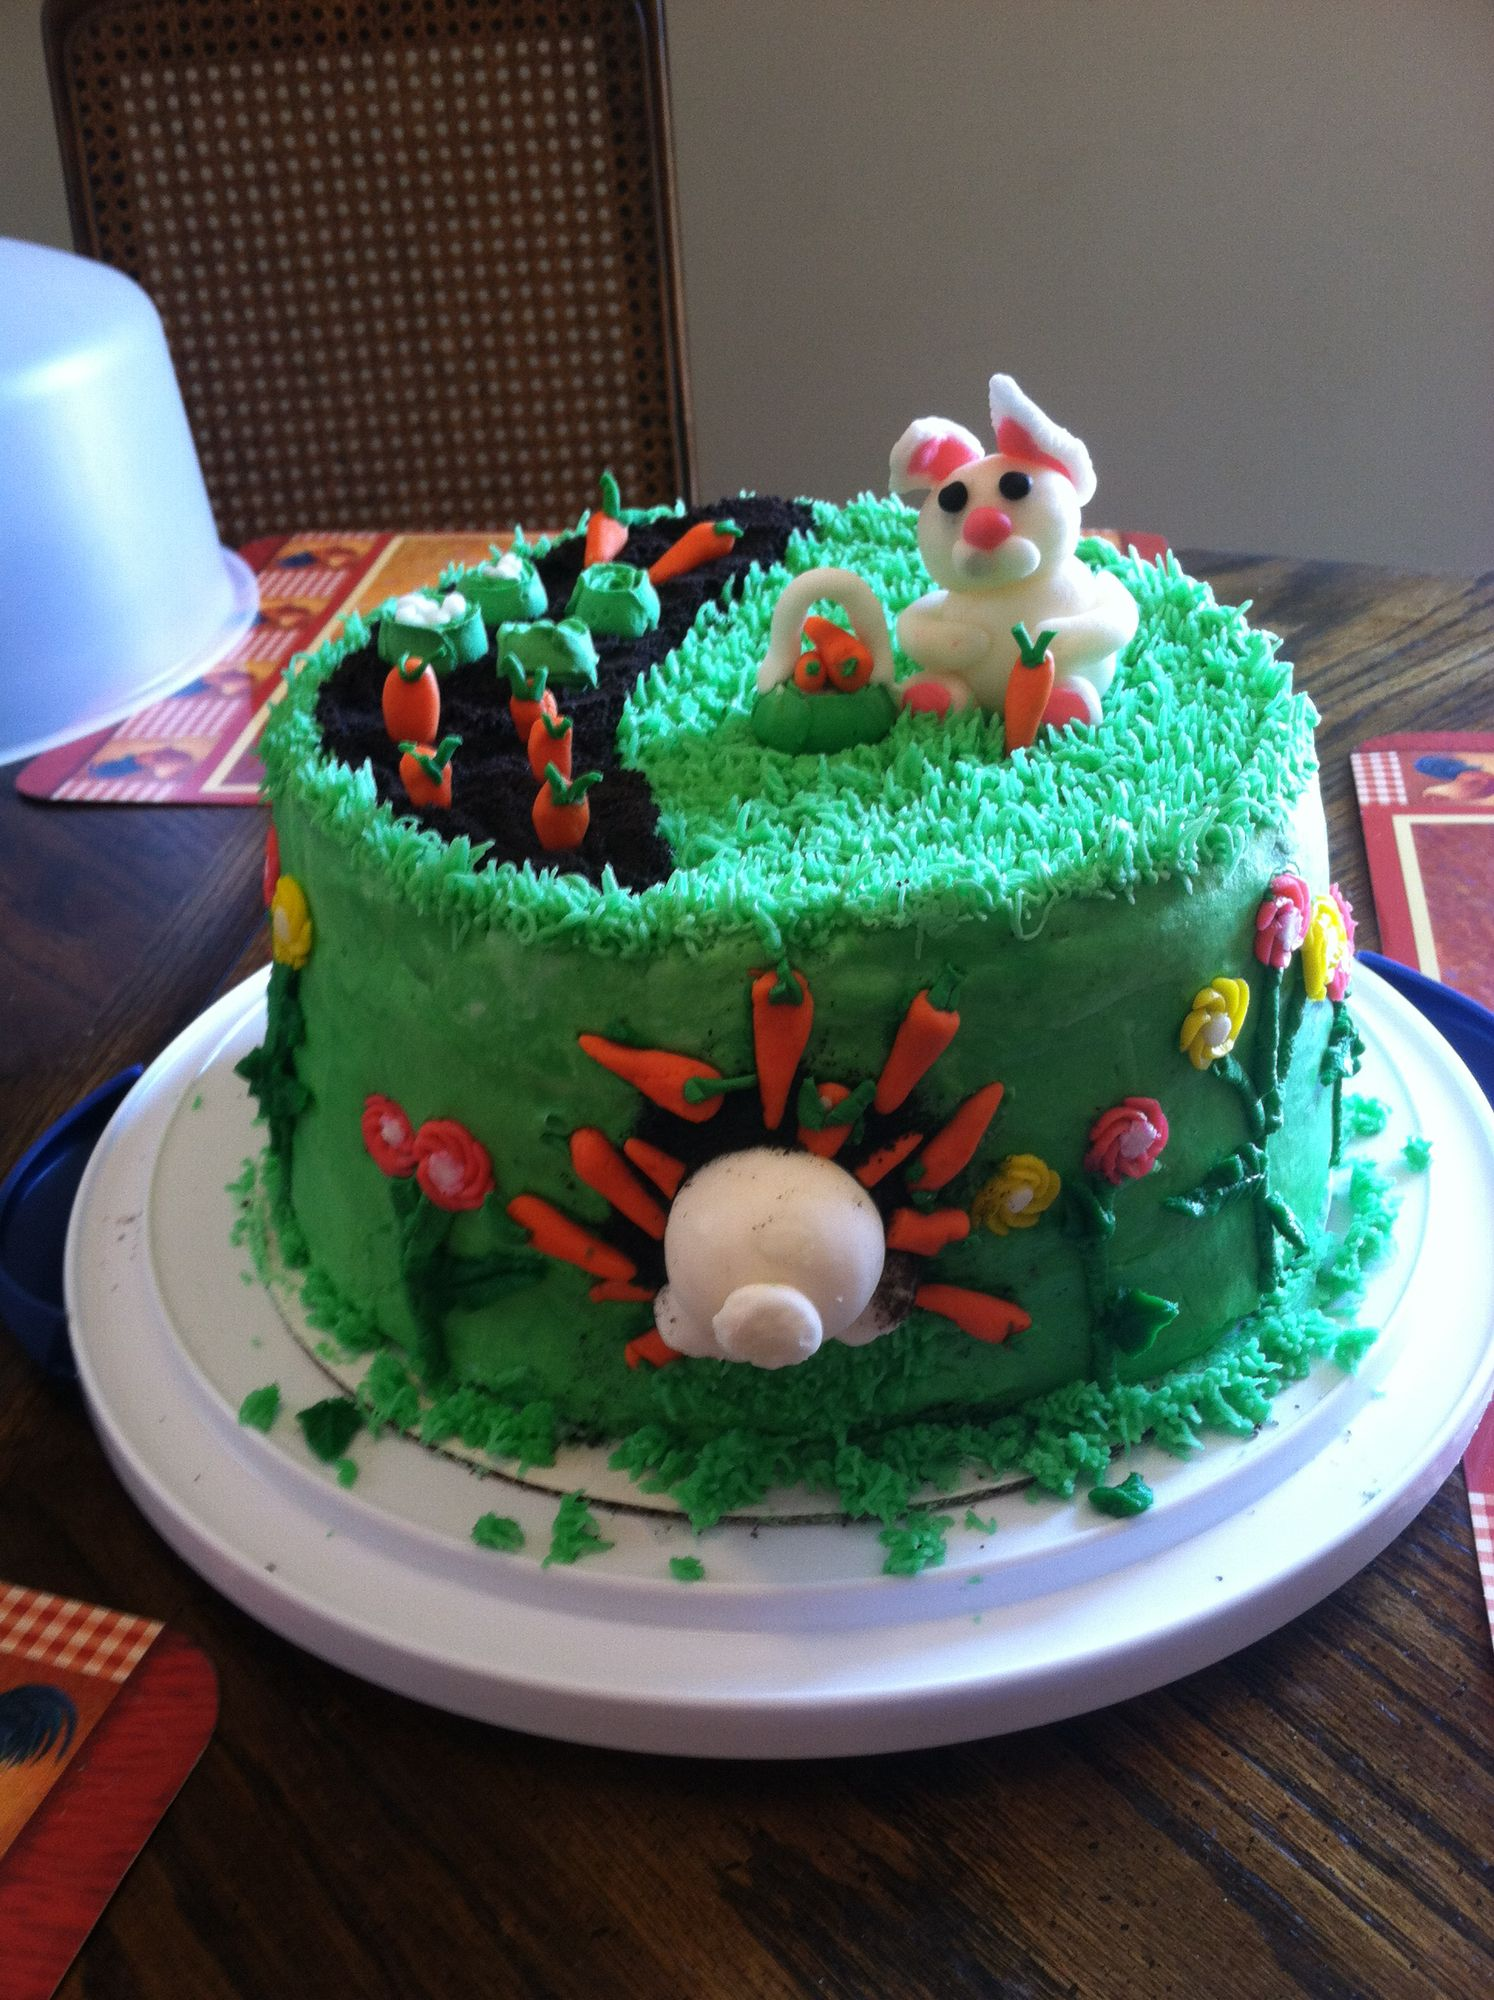 Easter themed cake